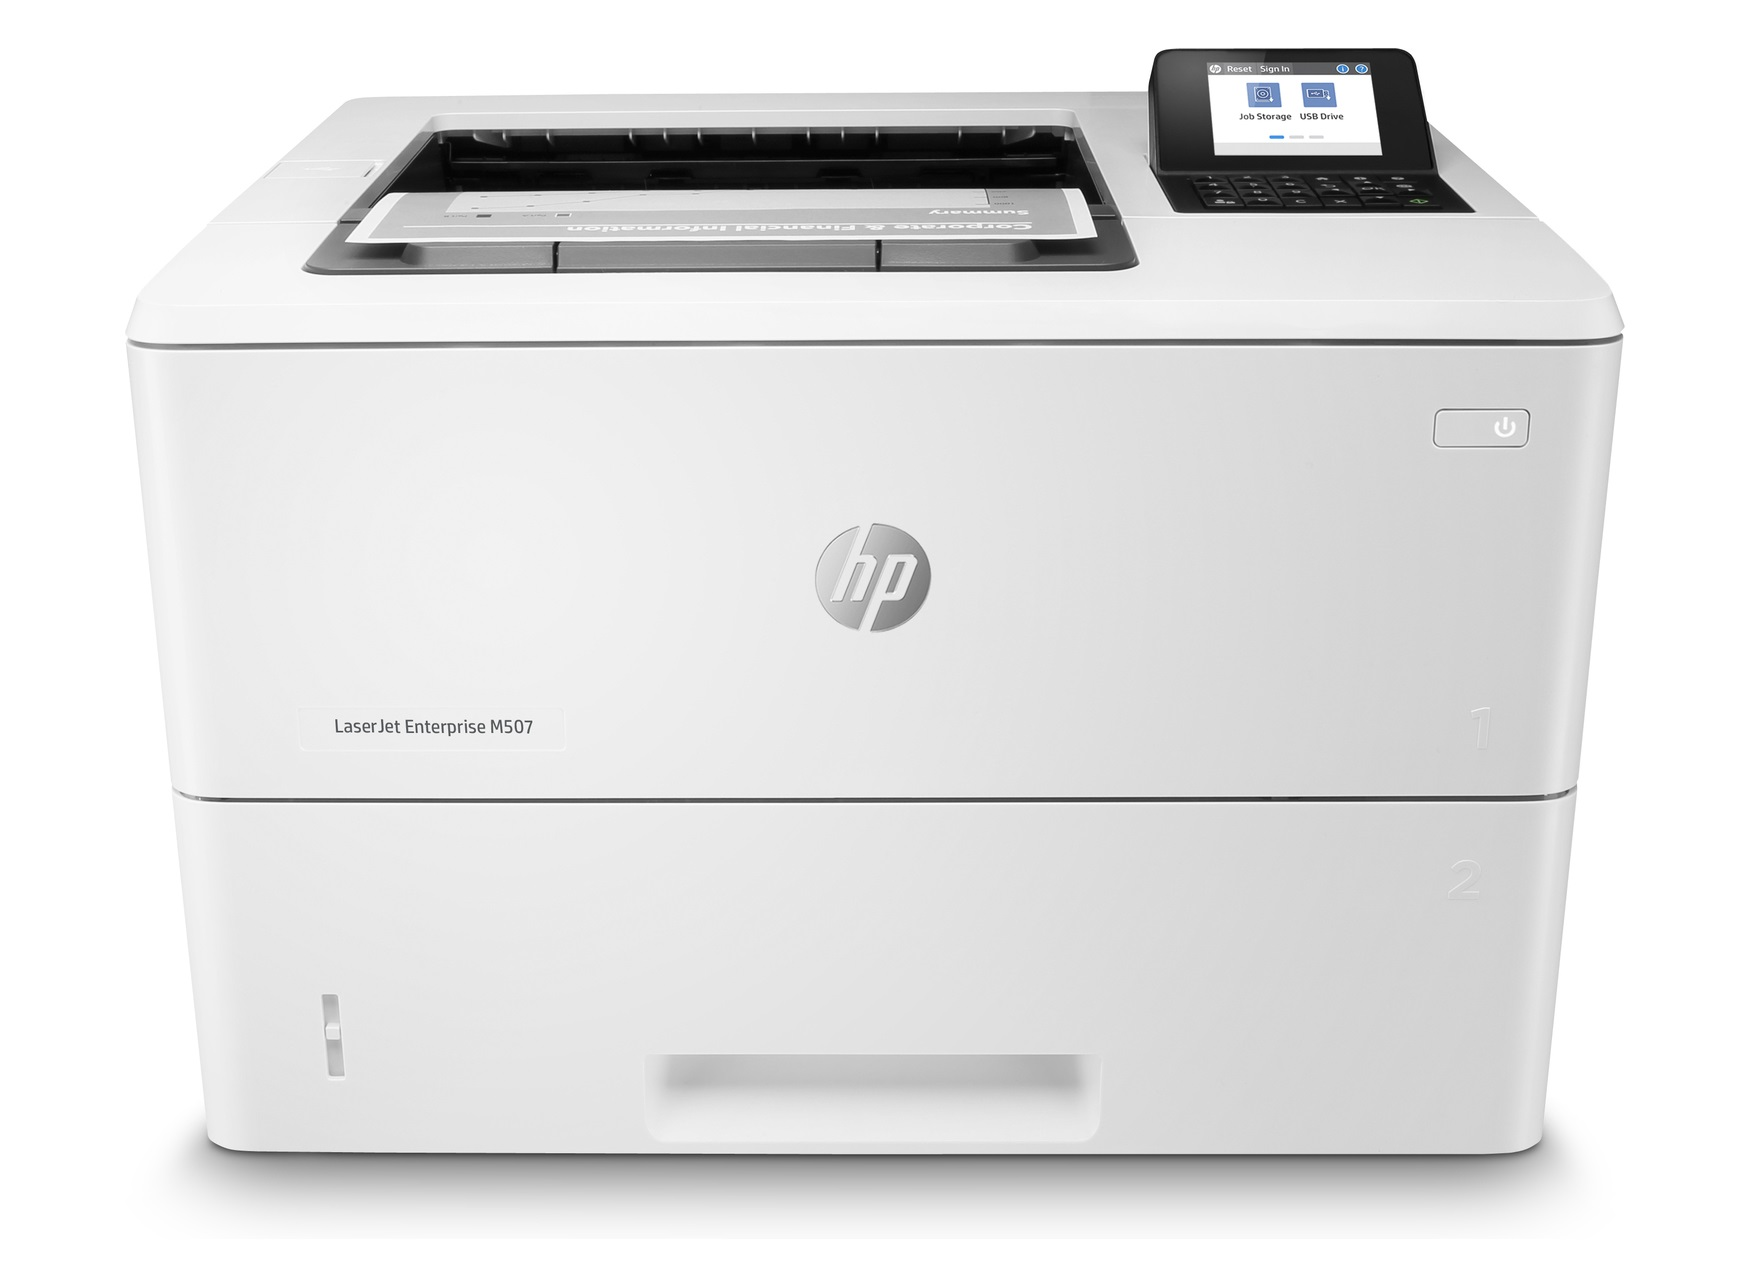 hpinc laserjet enterprise